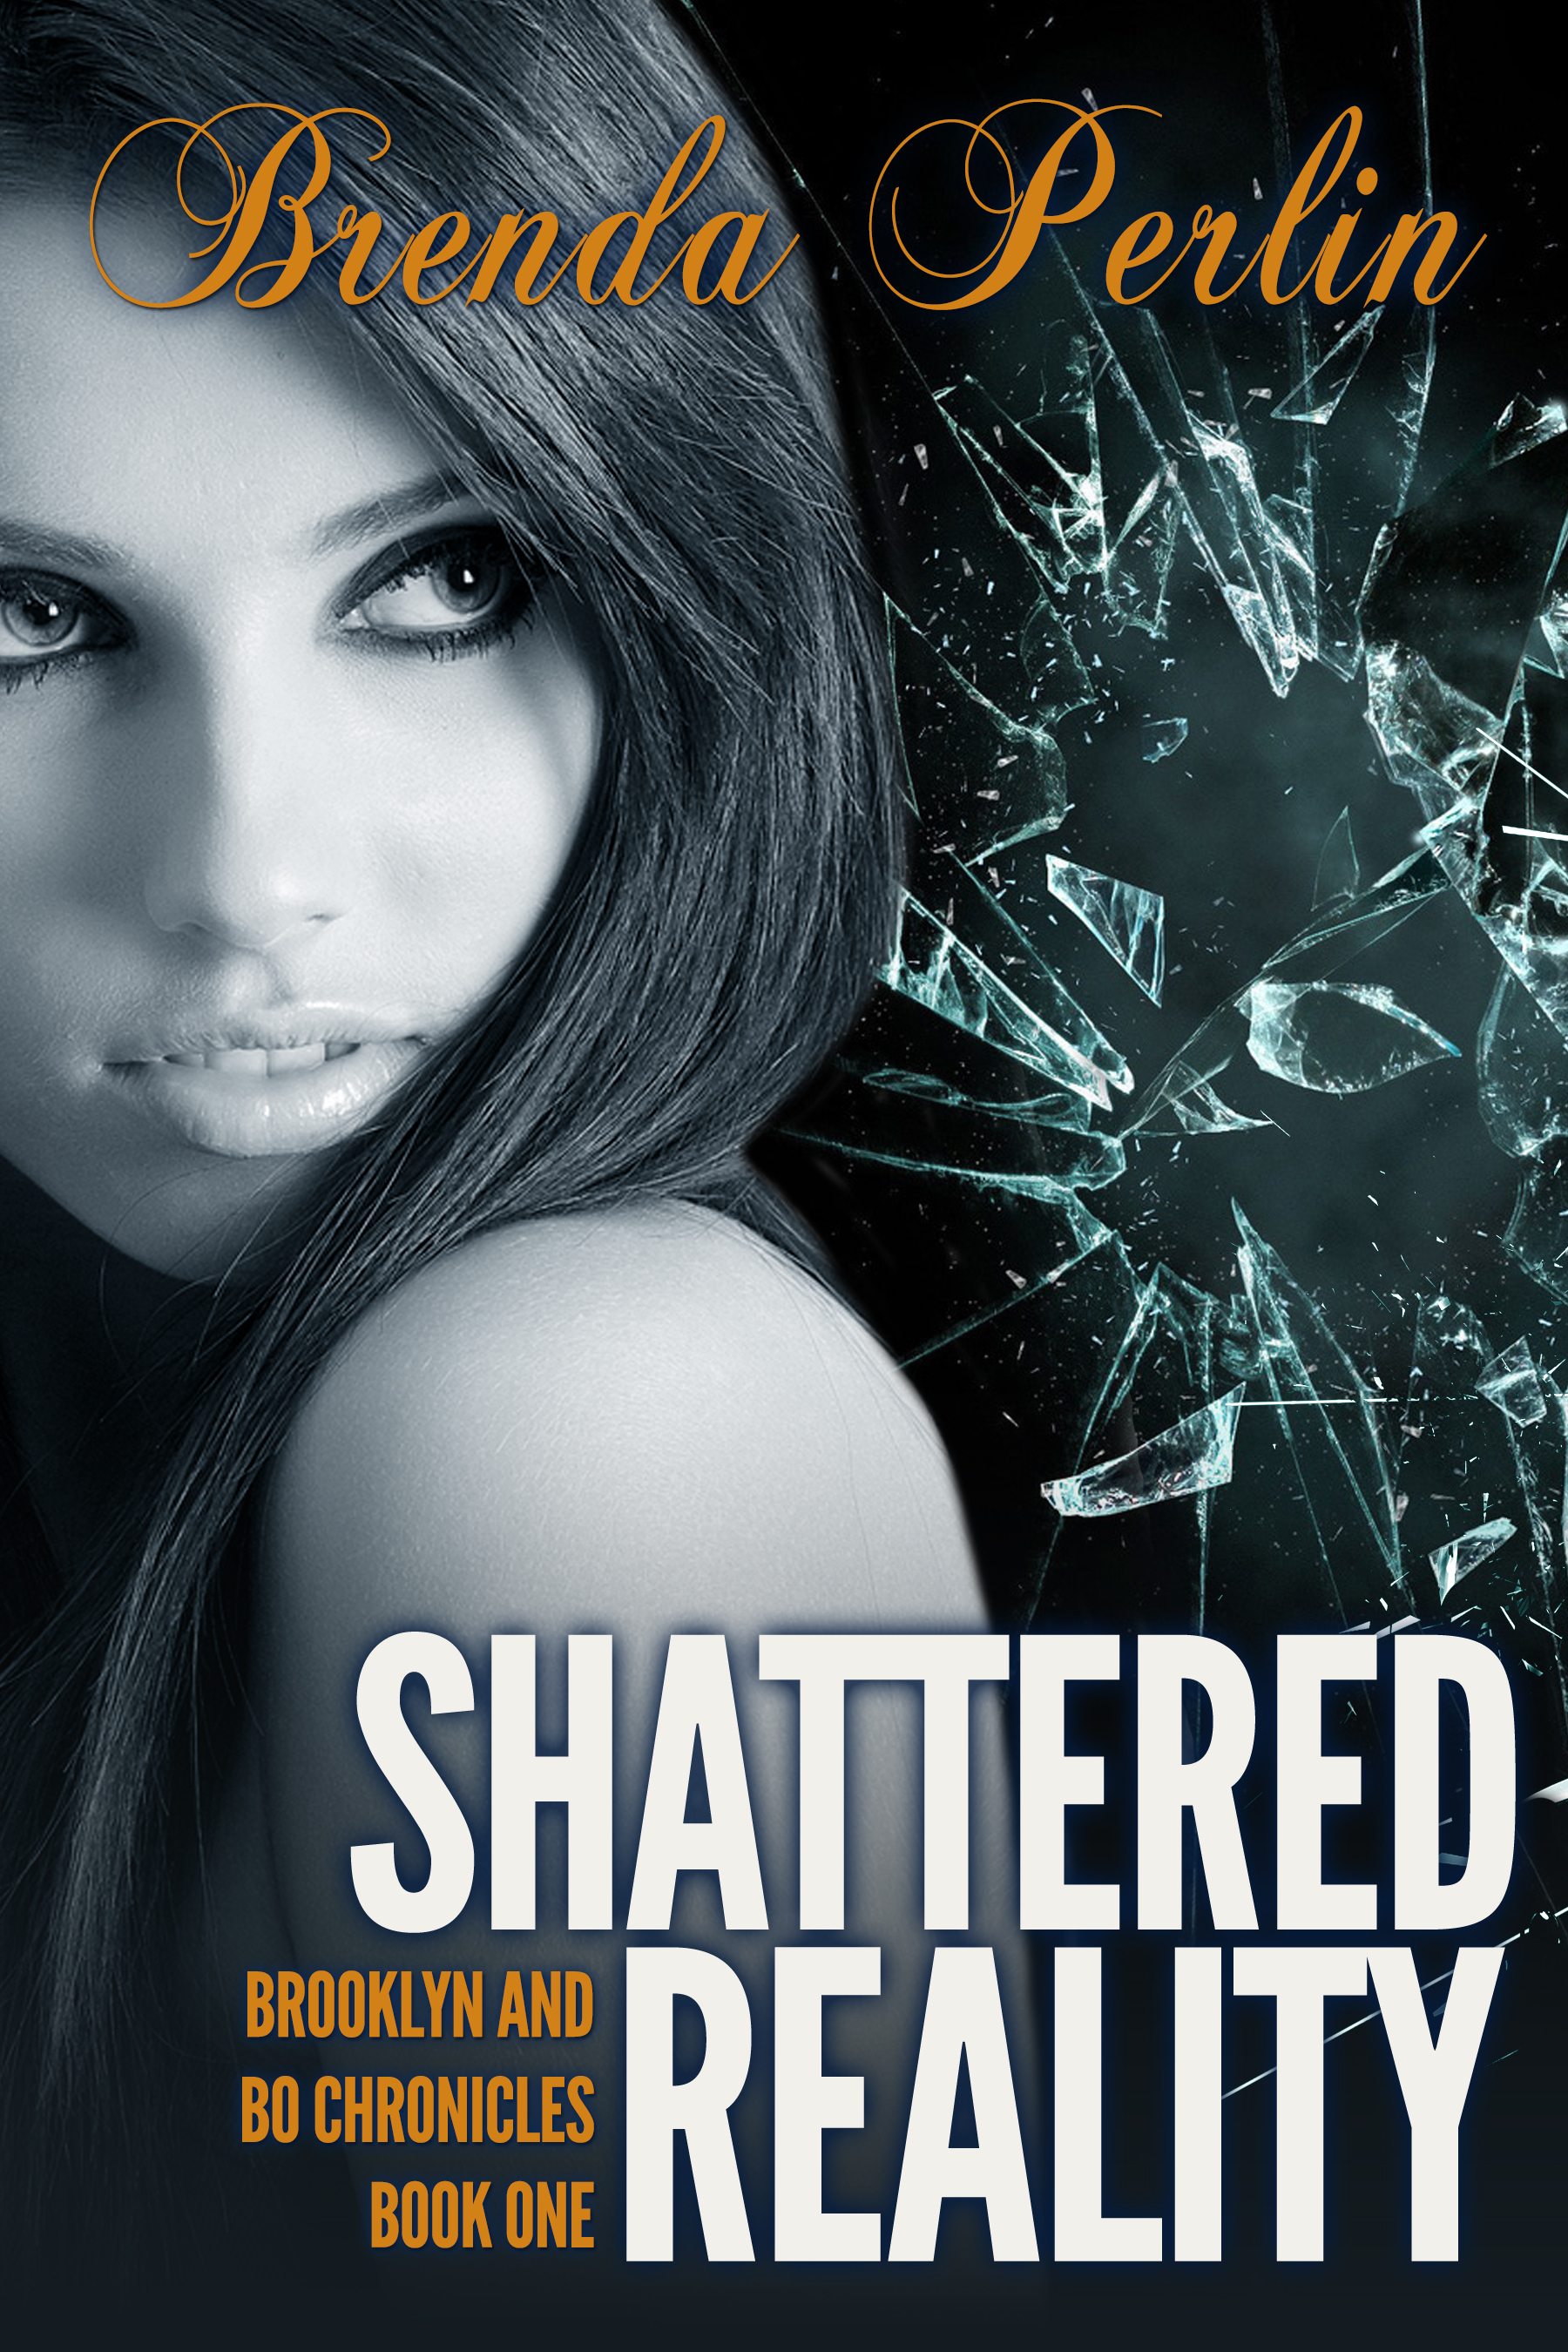 Shattered Reality (Brooklyn and Bo Chronicles: Book One) Second Edition  by  Brenda Perlin